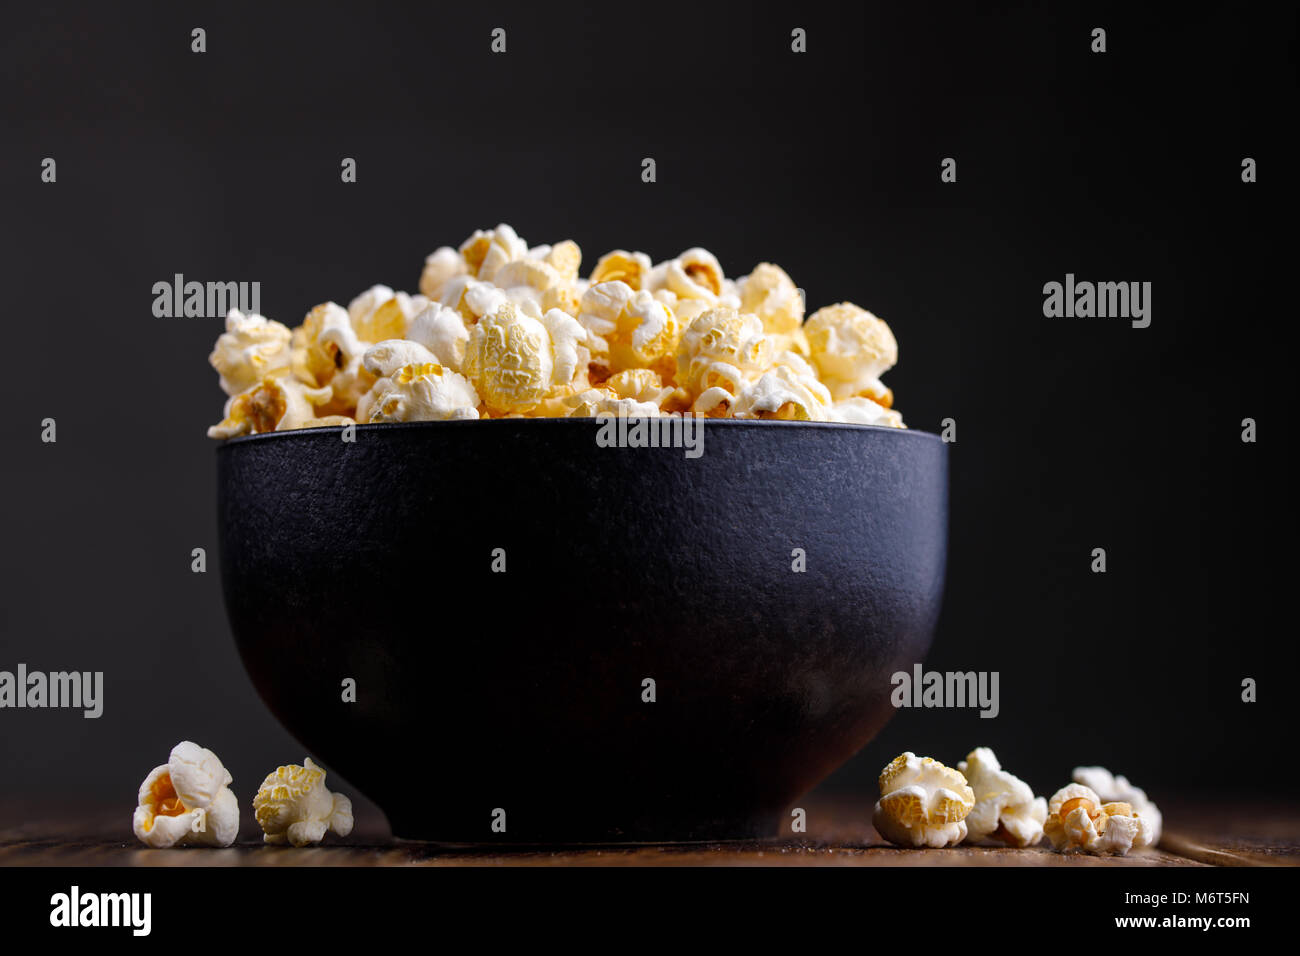 Popcorn in a ceramic bowl on a wooden background. - Stock Image